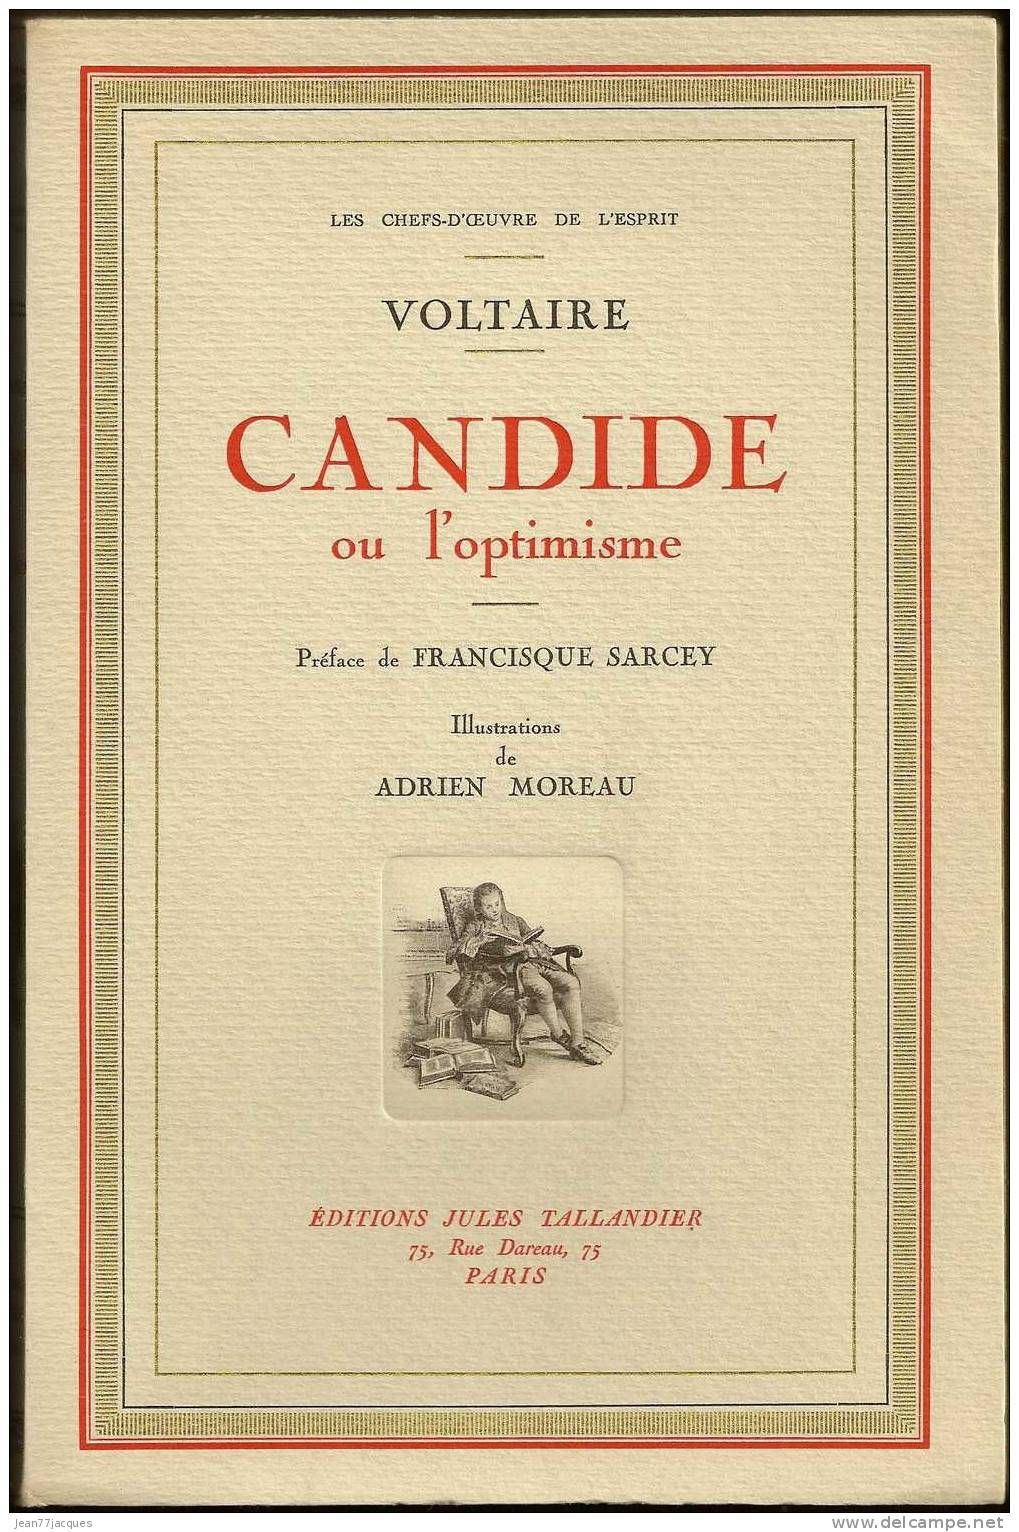 a review of candide a novel by voltaire Get this from a library candide [voltaire daniel gordon] -- candide is about a man who believes in the philosophy that: what happens, happens for the best in the end.